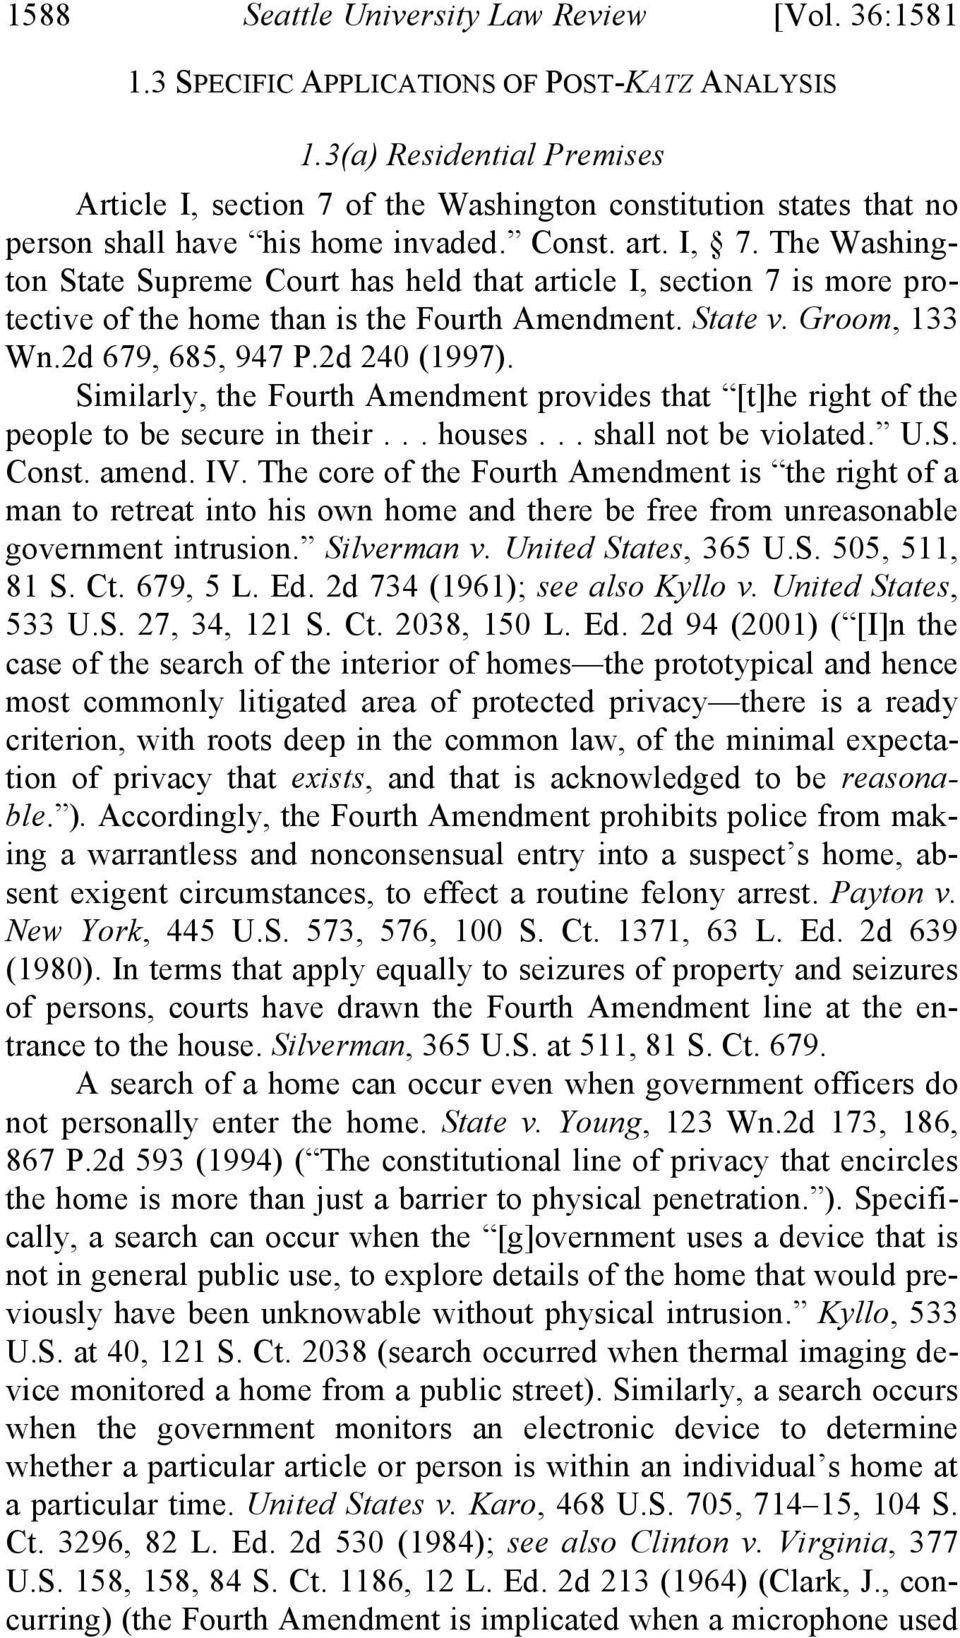 The Washington State Supreme Court has held that article I, section 7 is more protective of the home than is the Fourth Amendment. State v. Groom, 133 Wn.2d 679, 685, 947 P.2d 240 (1997).